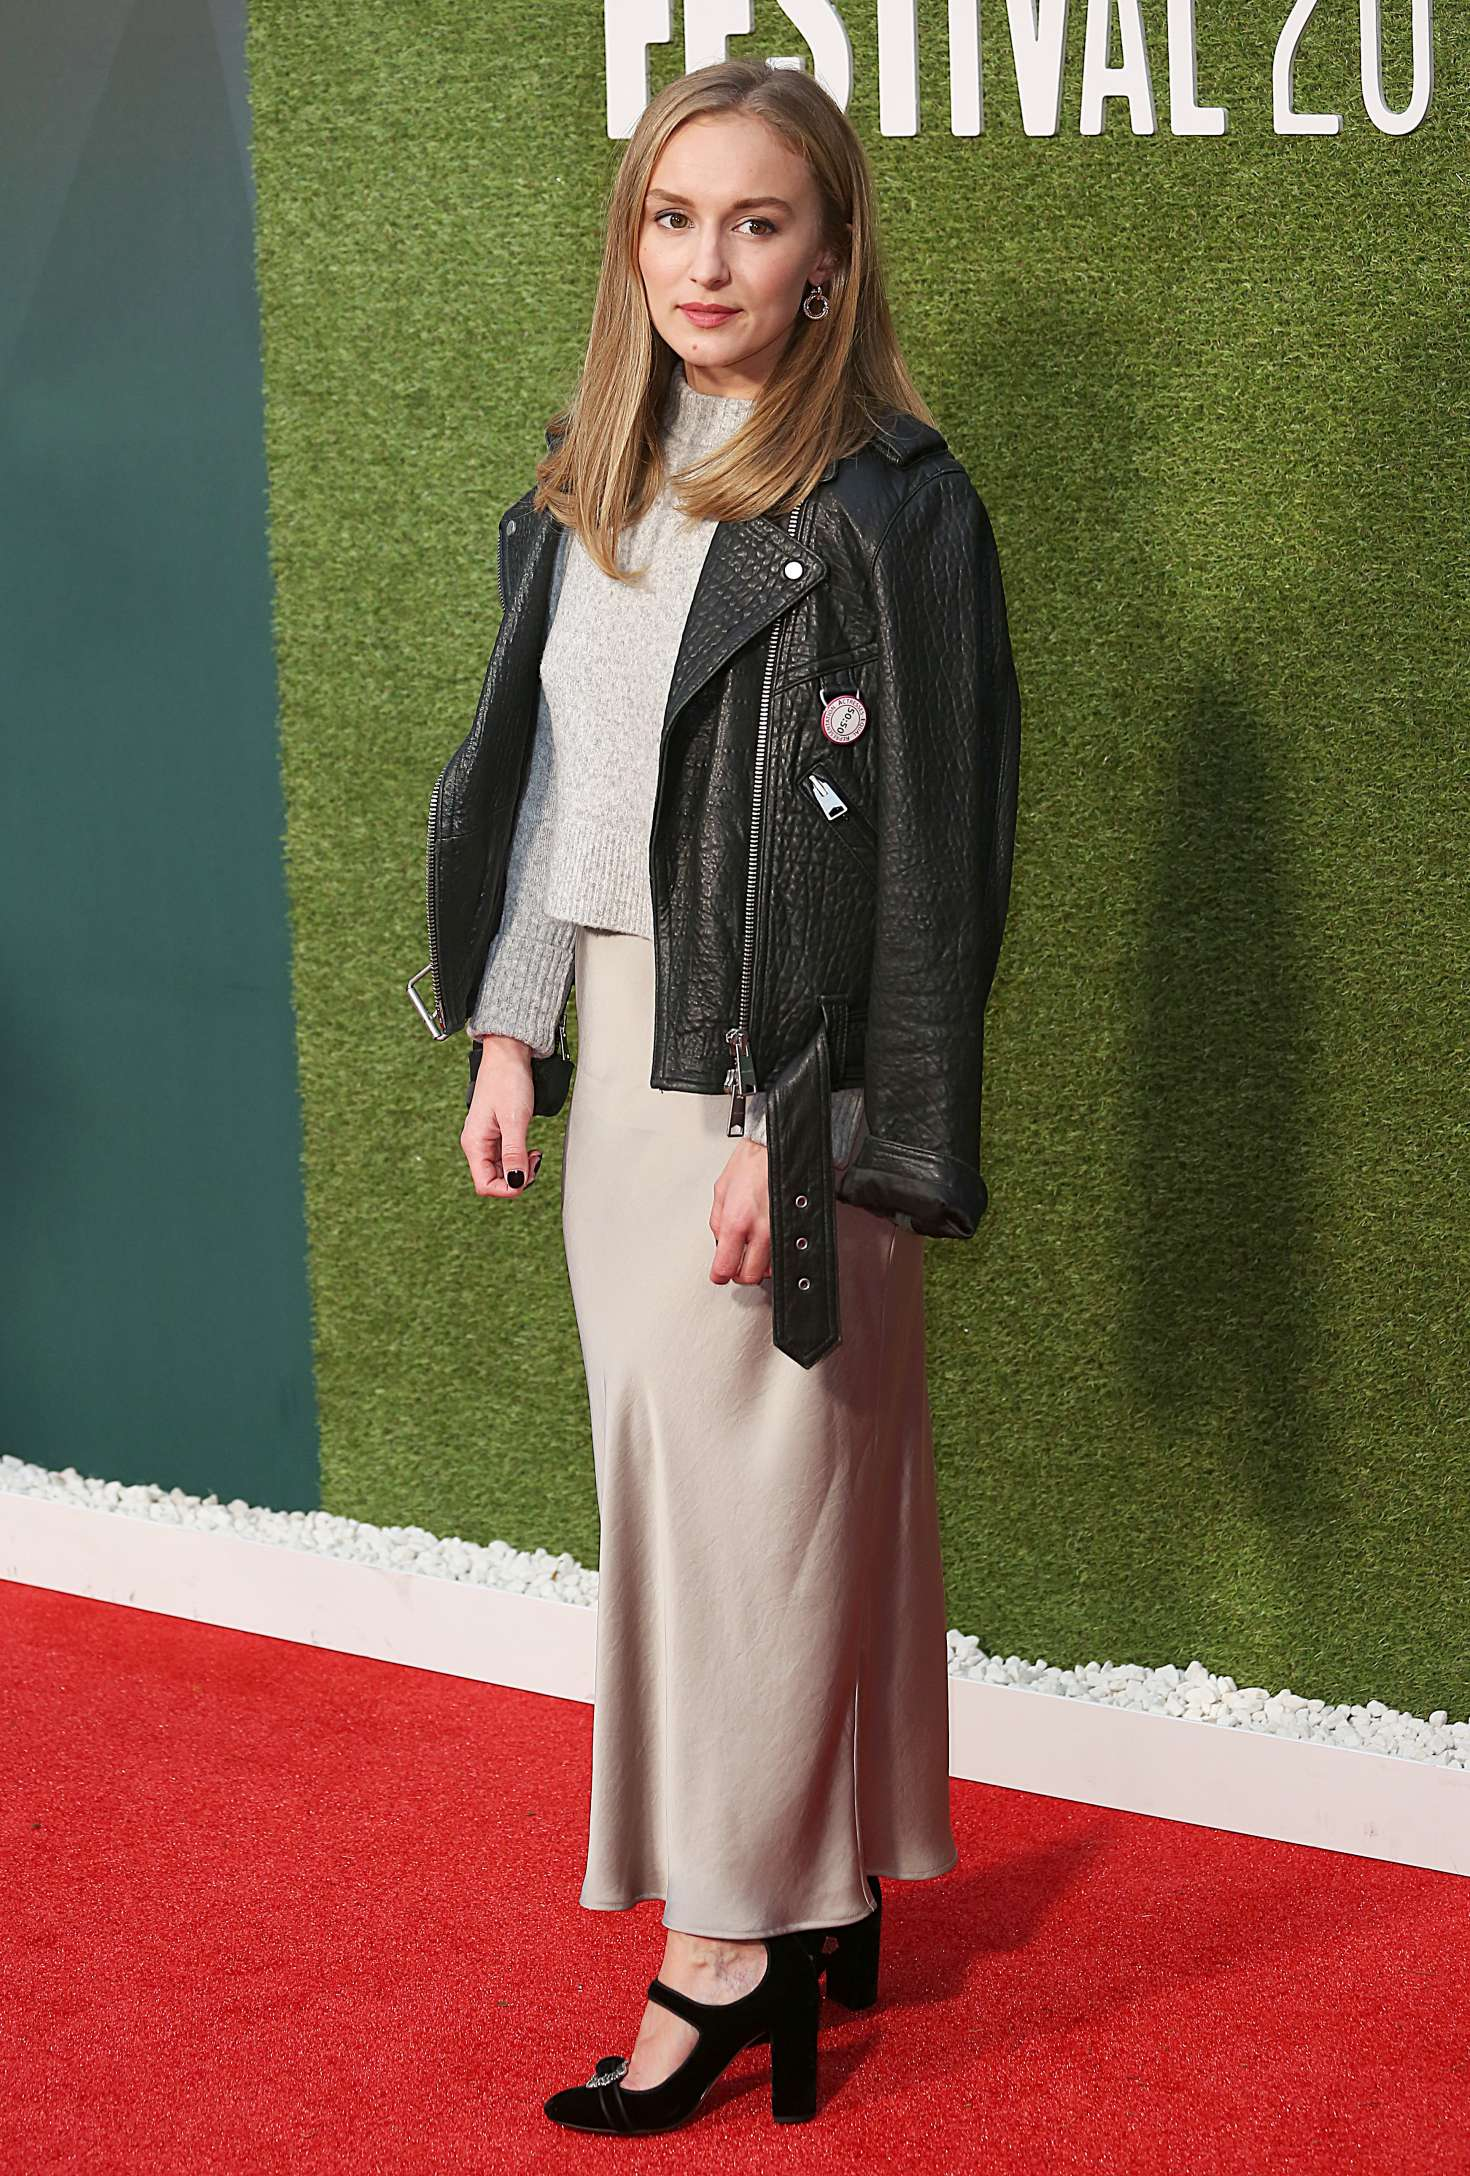 Bethany Muir 2018 : Bethany Muir: The Little Drummer Girl Premiere -02